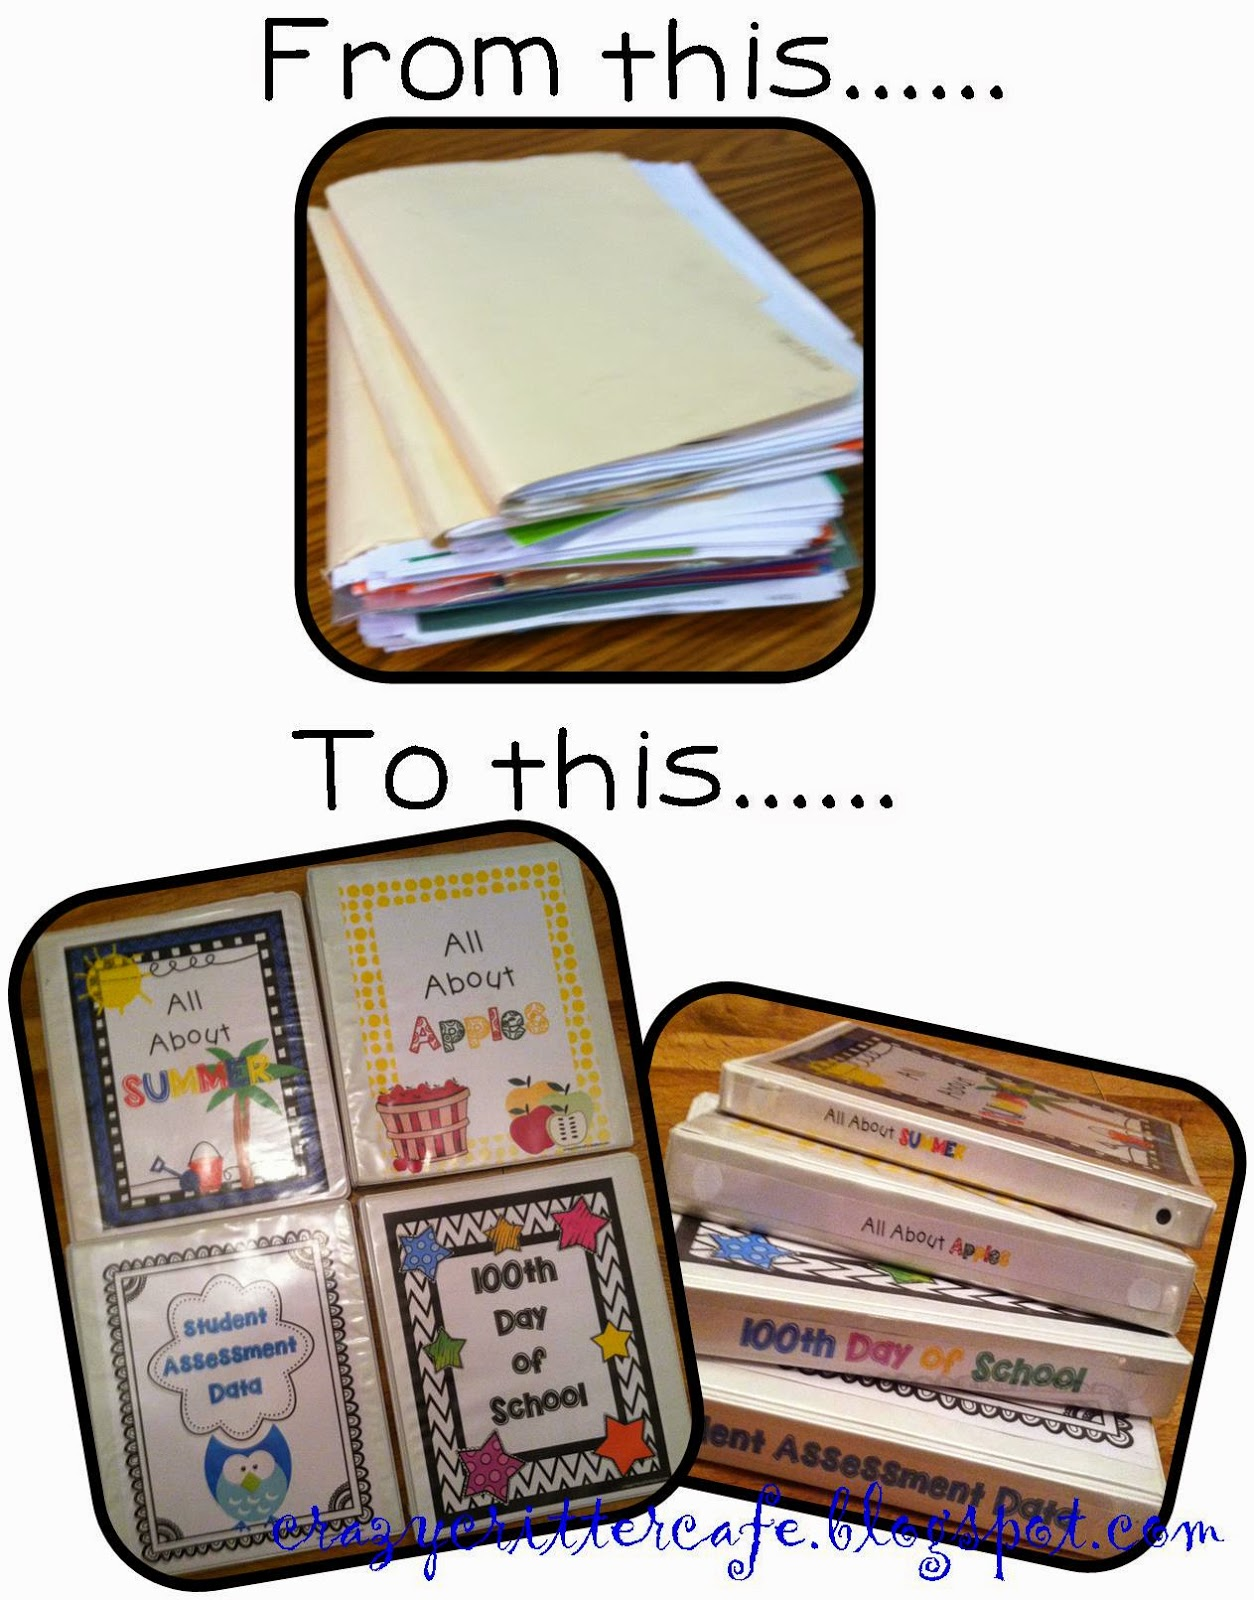 http://www.teacherspayteachers.com/Product/Binder-Covers-Spines-for-Many-Reasons-Seasons-1219489